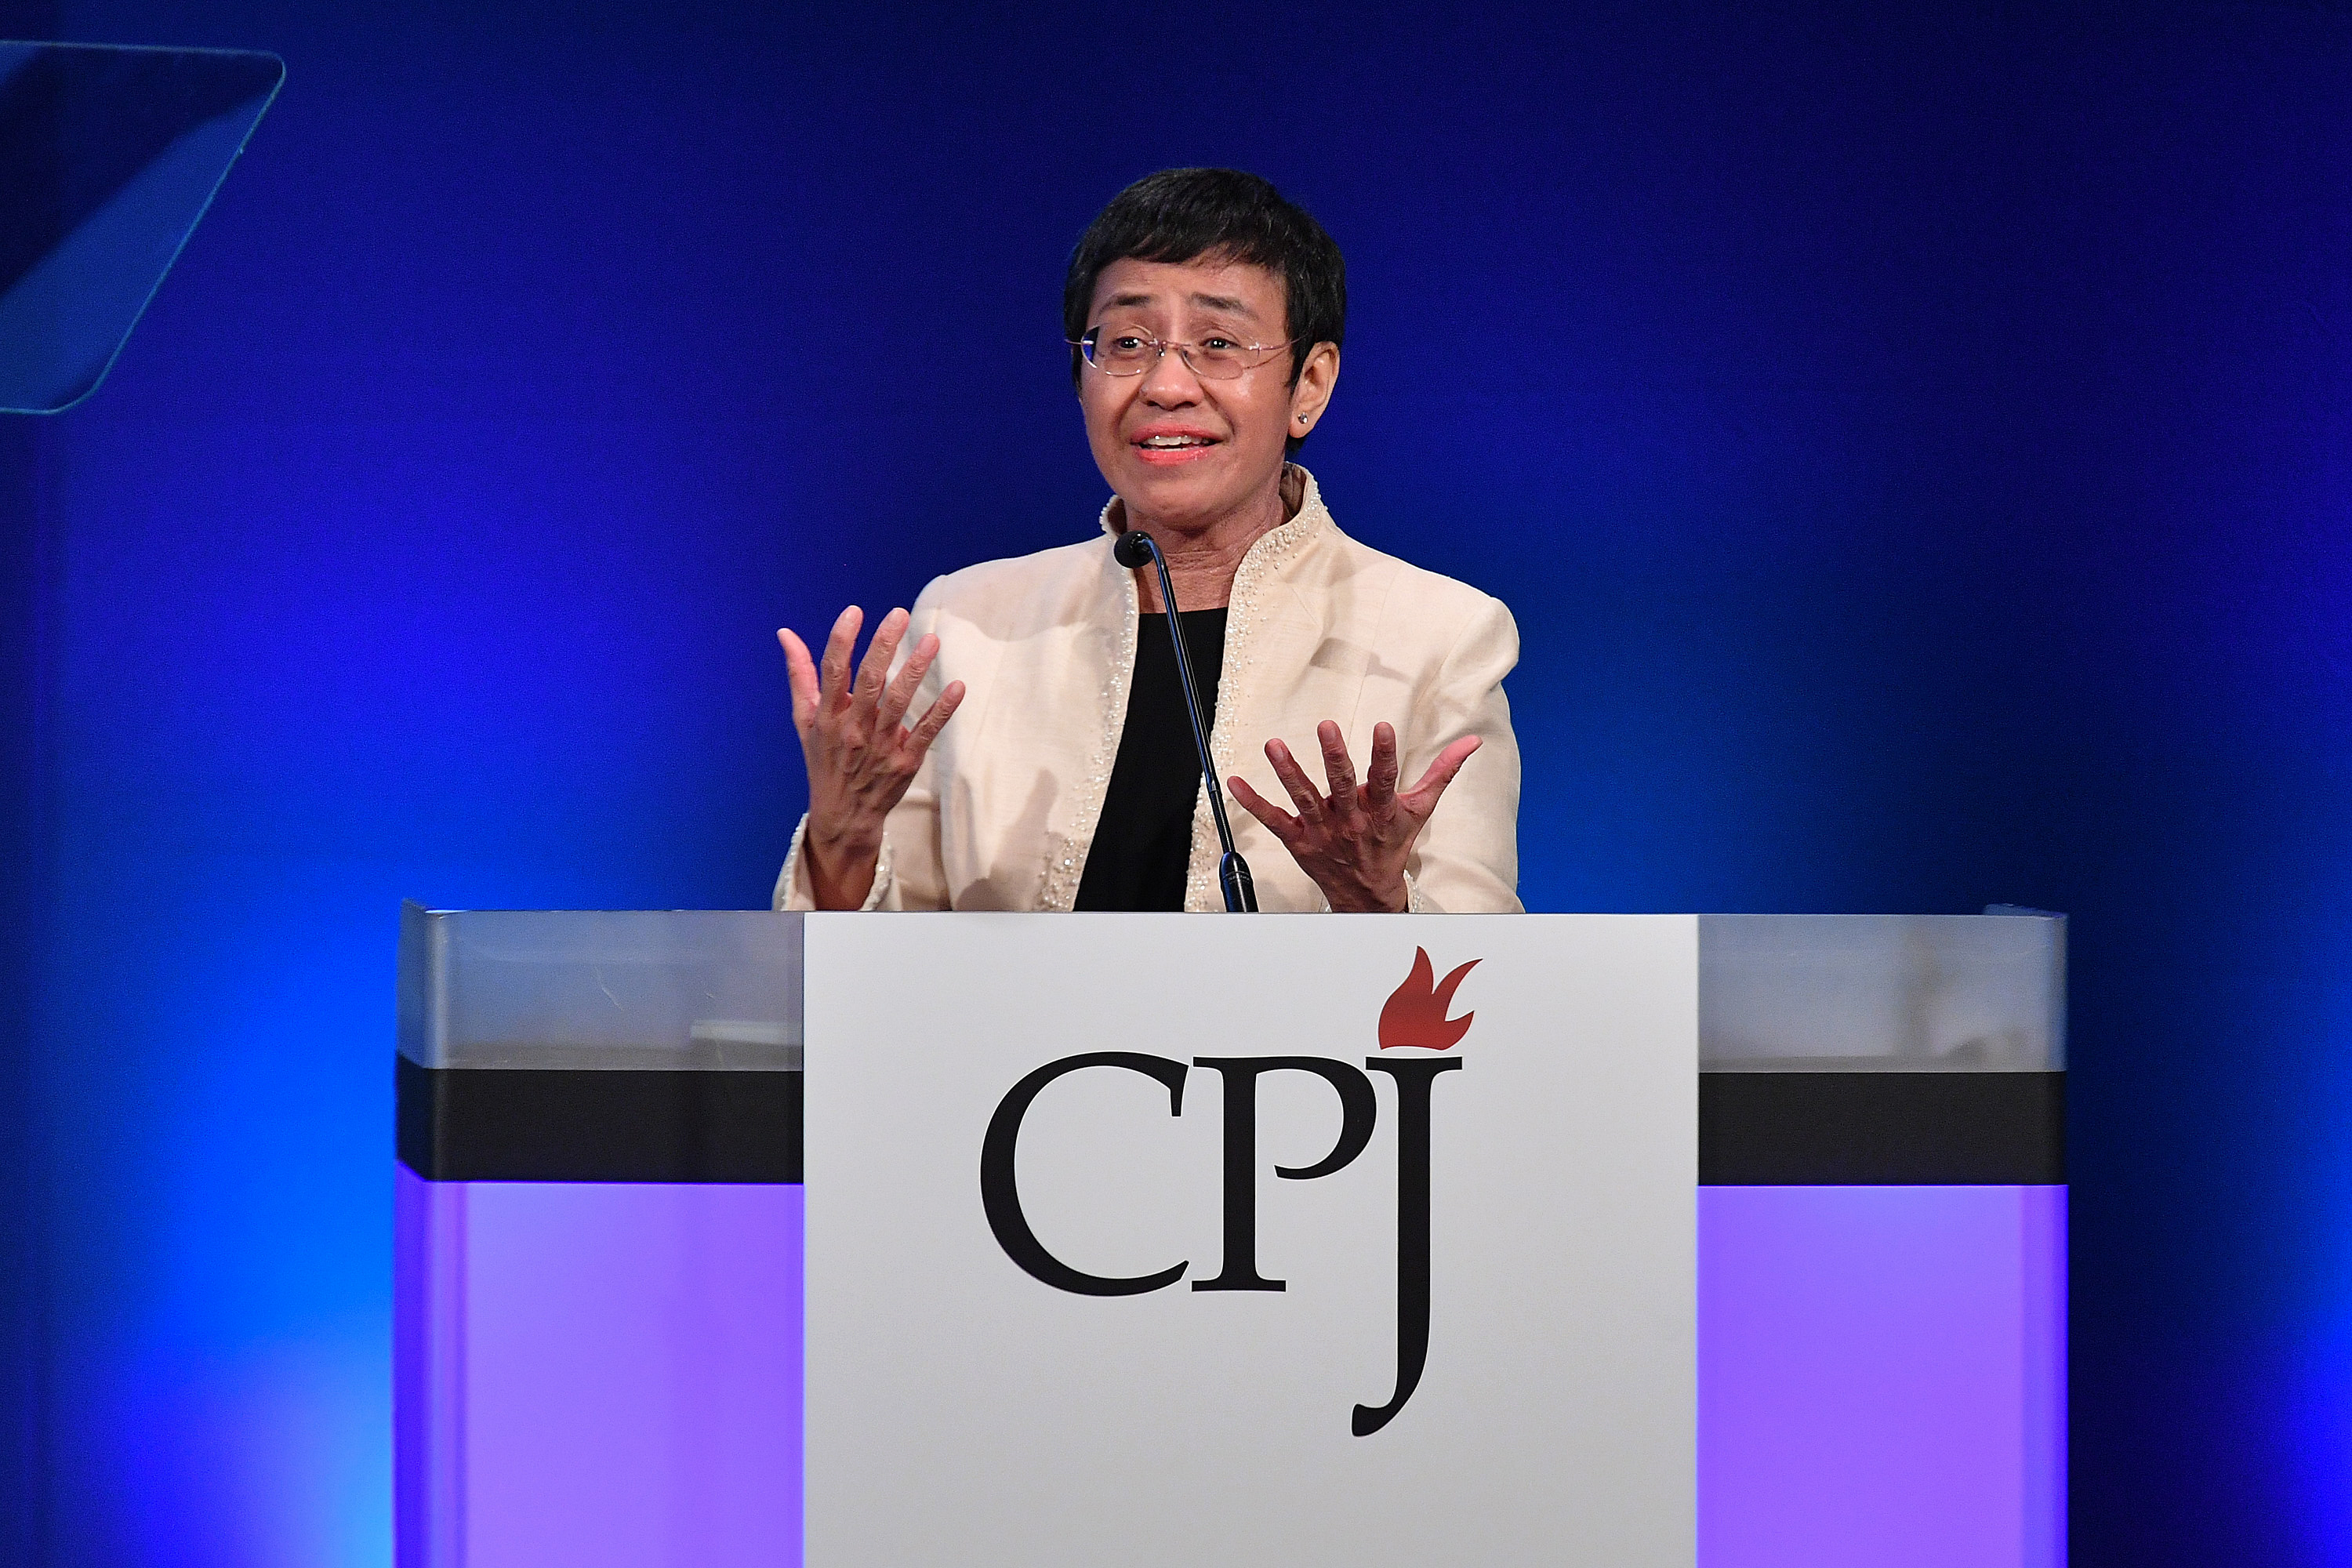 Maria Ressa speaks onstage at the Committee To Protect Journalists' International Press Freedom Awards at the Grand Hyatt on November 20, 2018 in New York City.